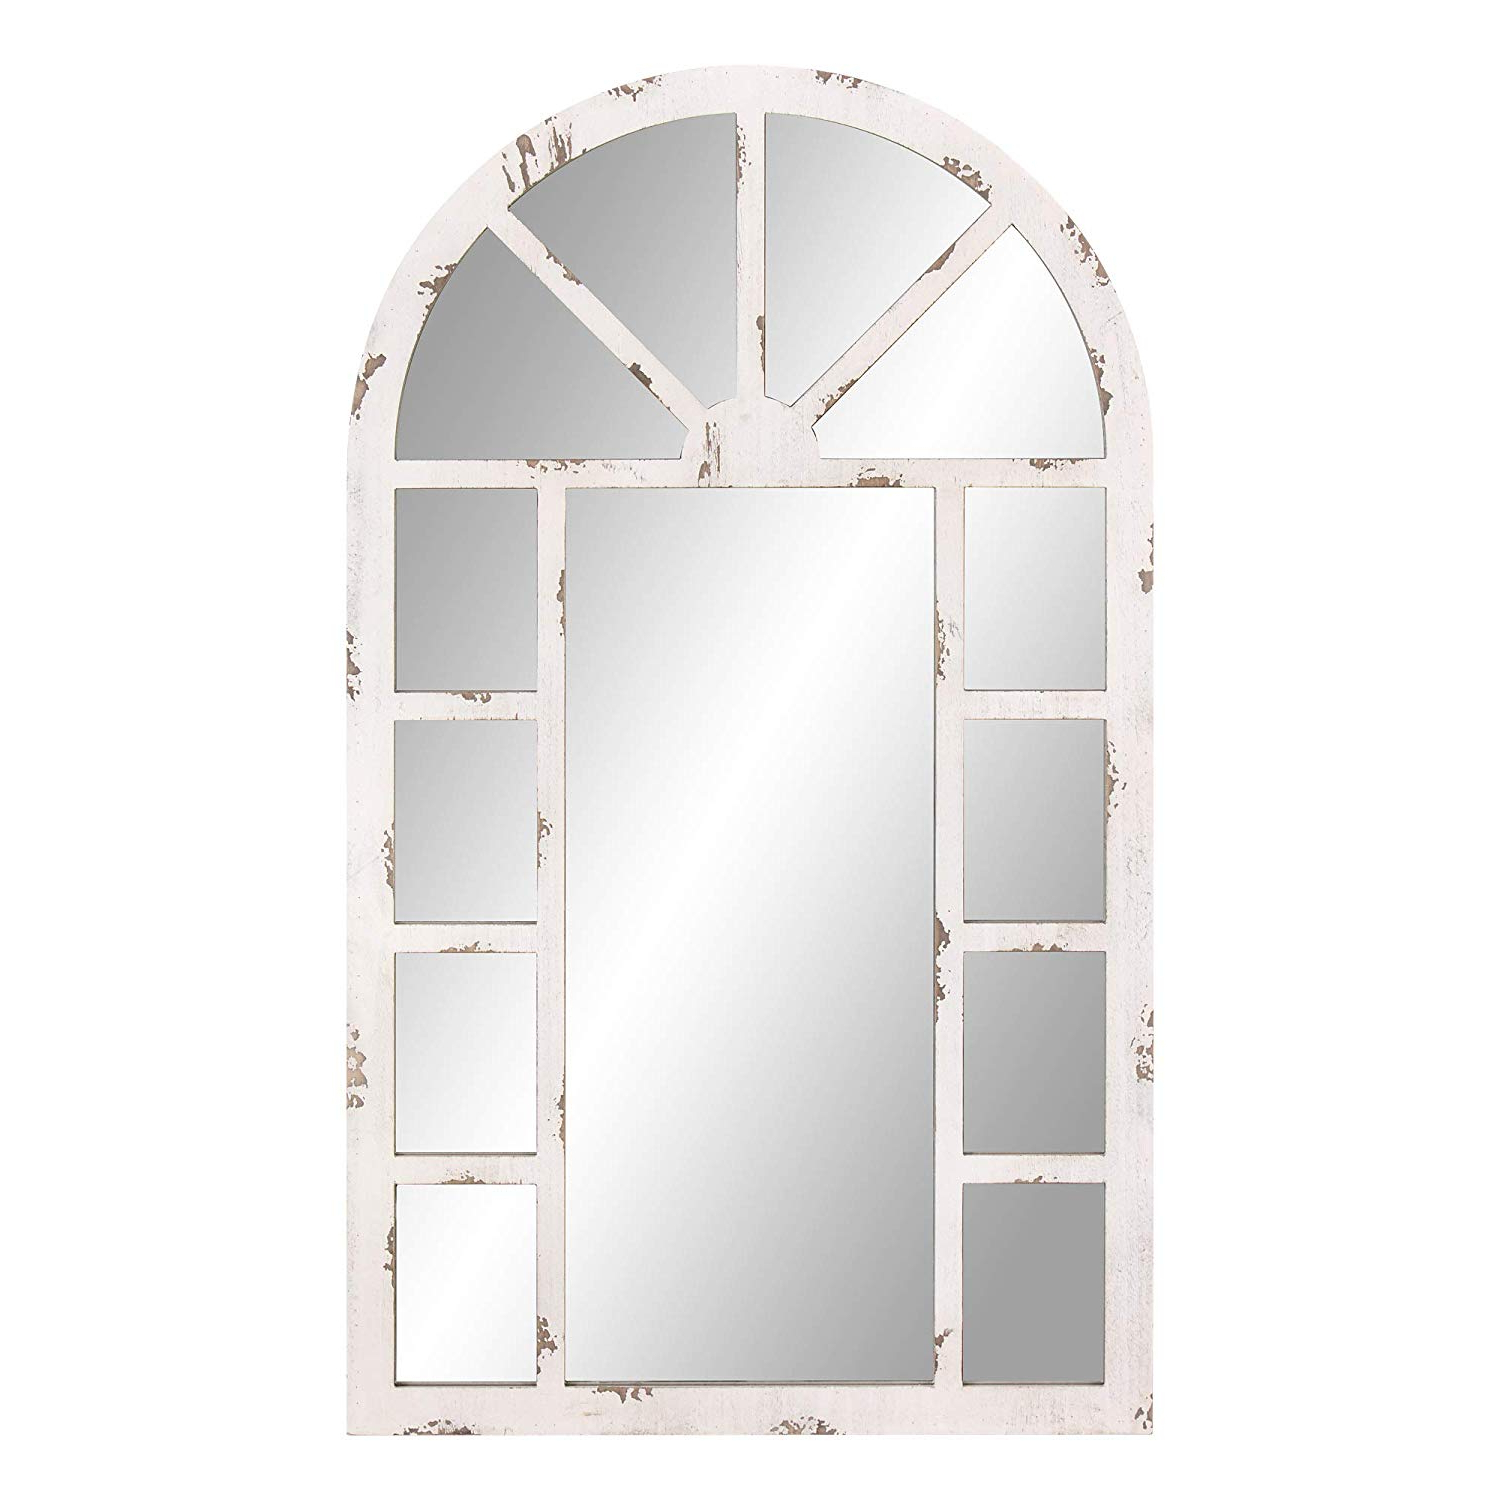 Well Known Patton Wall Decor 24x40 Distressed White Arch Windowpane Wall Mounted Mirrors Inside Distressed White Wall Mirrors (View 15 of 20)